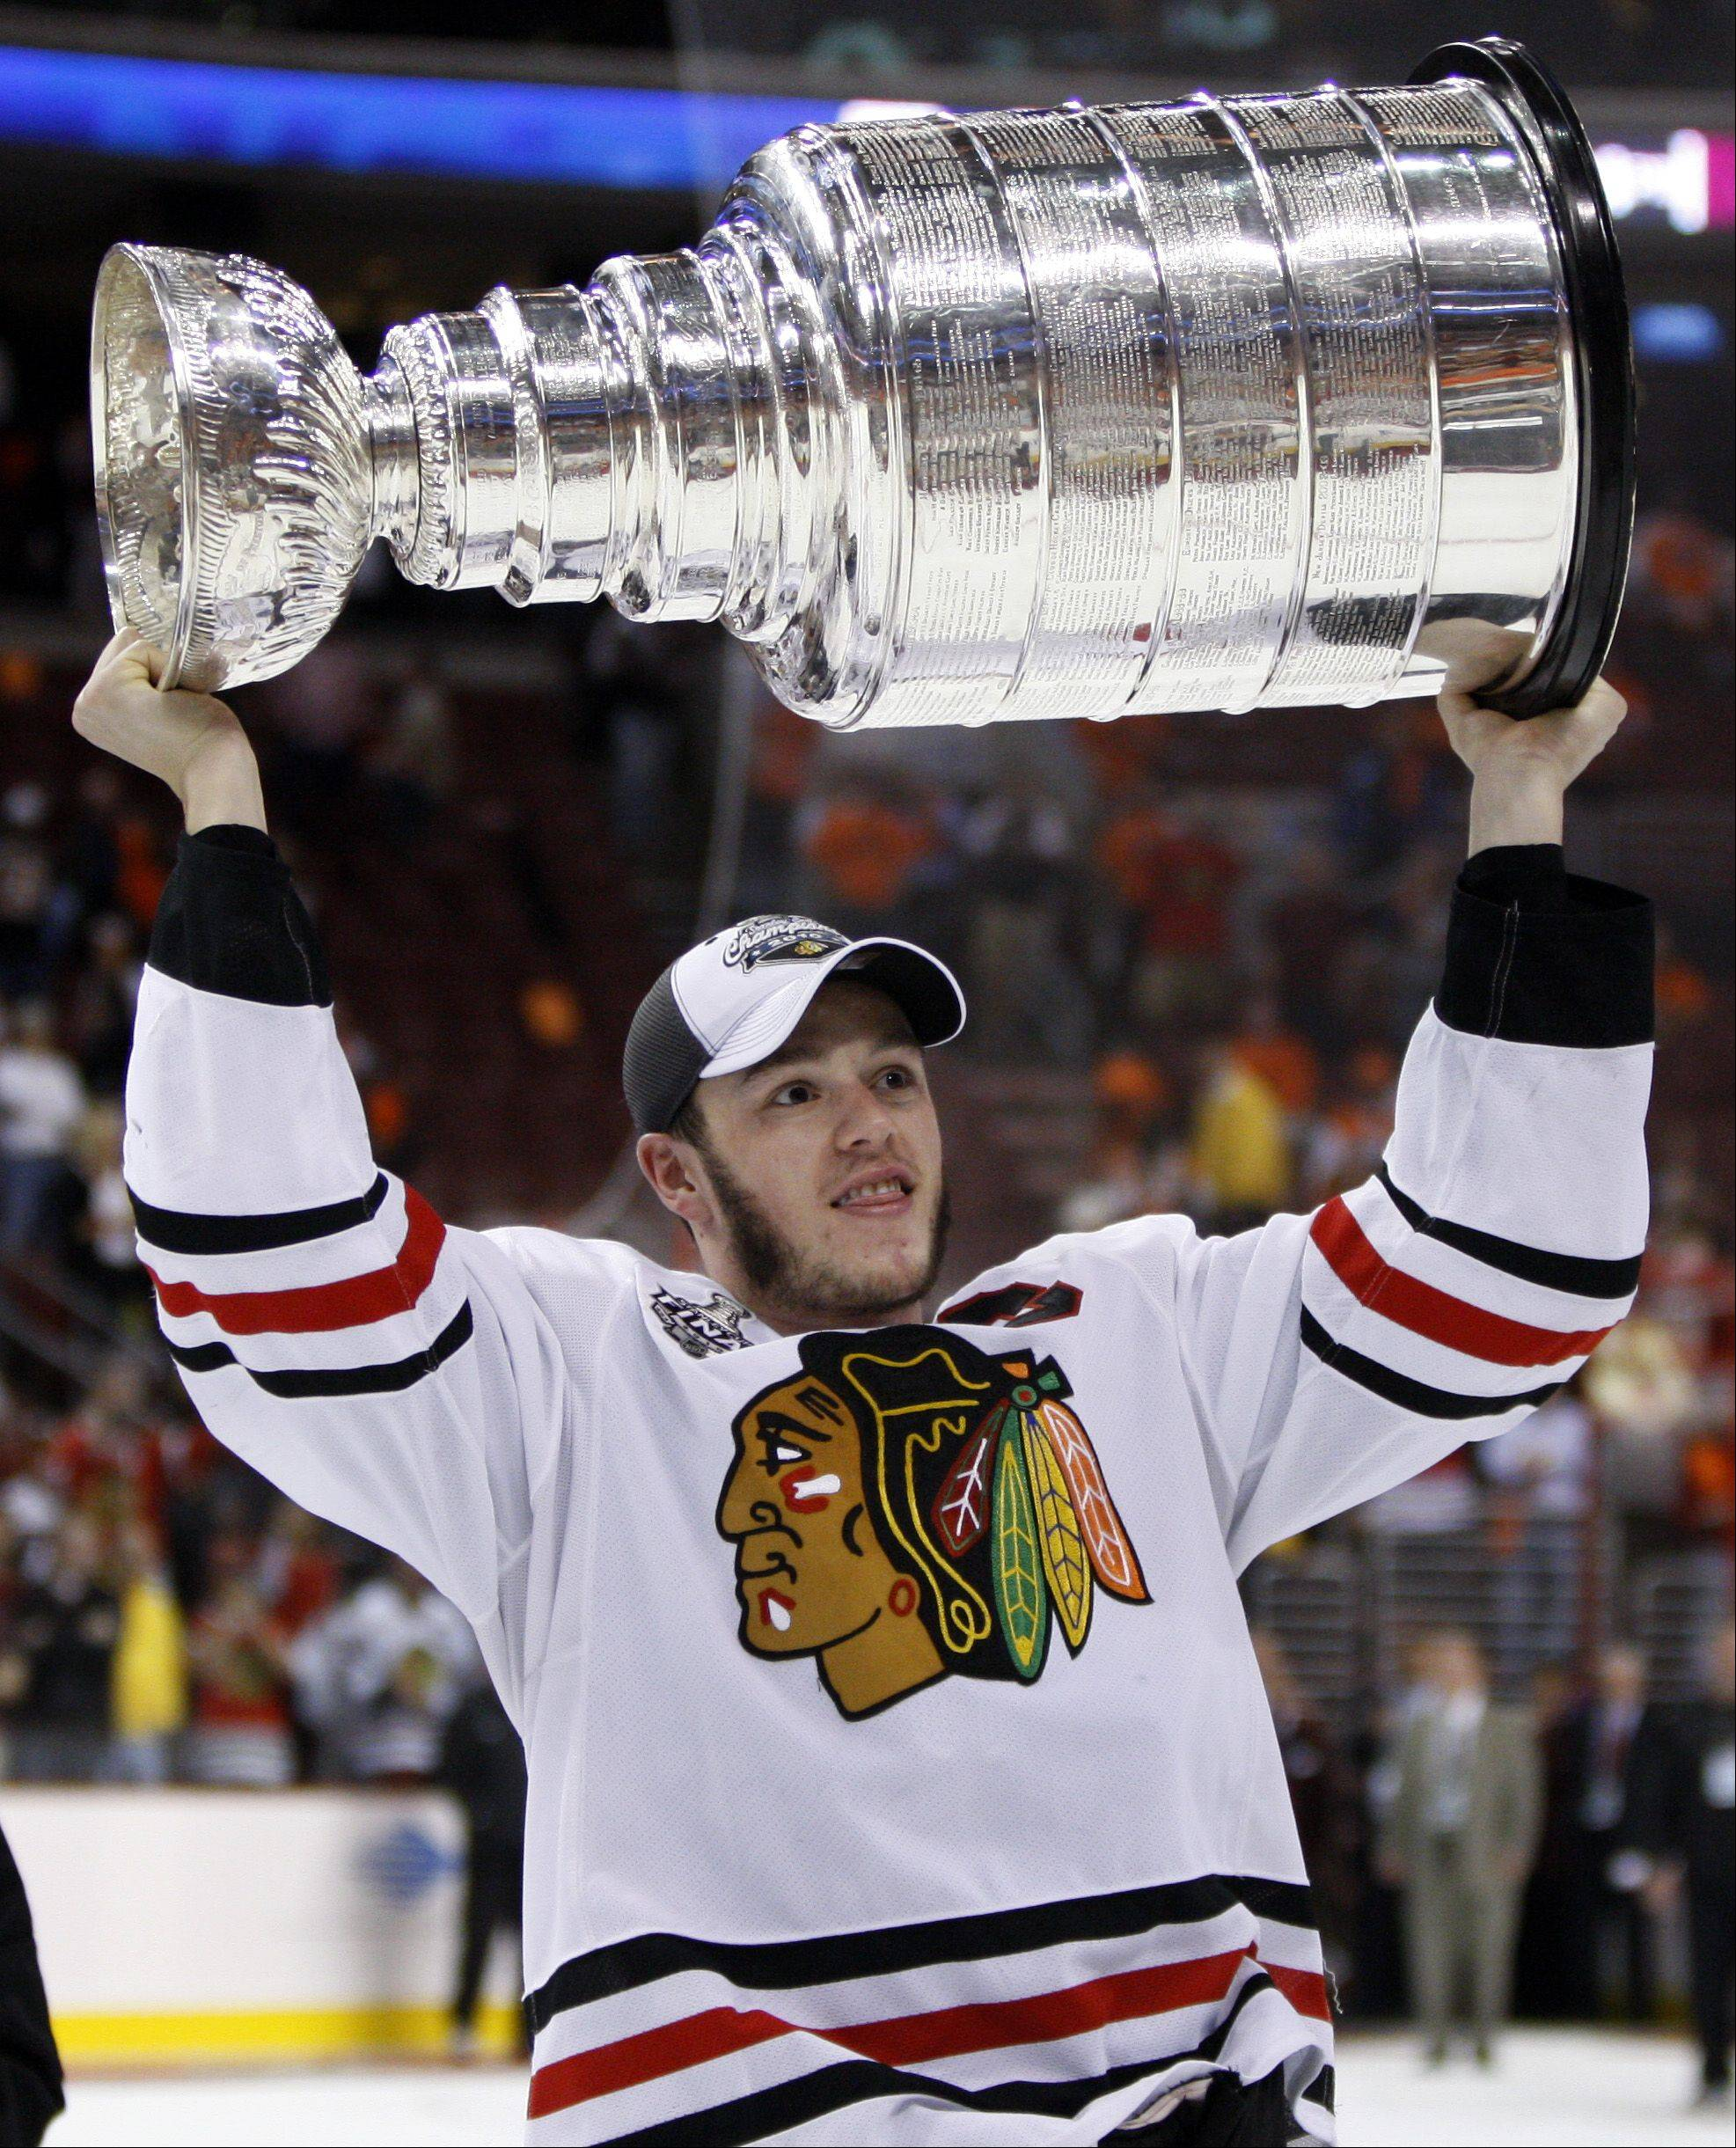 Captain Jonathan Toews lifts the Stanley Cup after the Blackhawks beat the Flyers 4-3 in overtime to win Game 6 of the NHL Stanley Cup Finals on June 9, 2010, in Philadelphia.